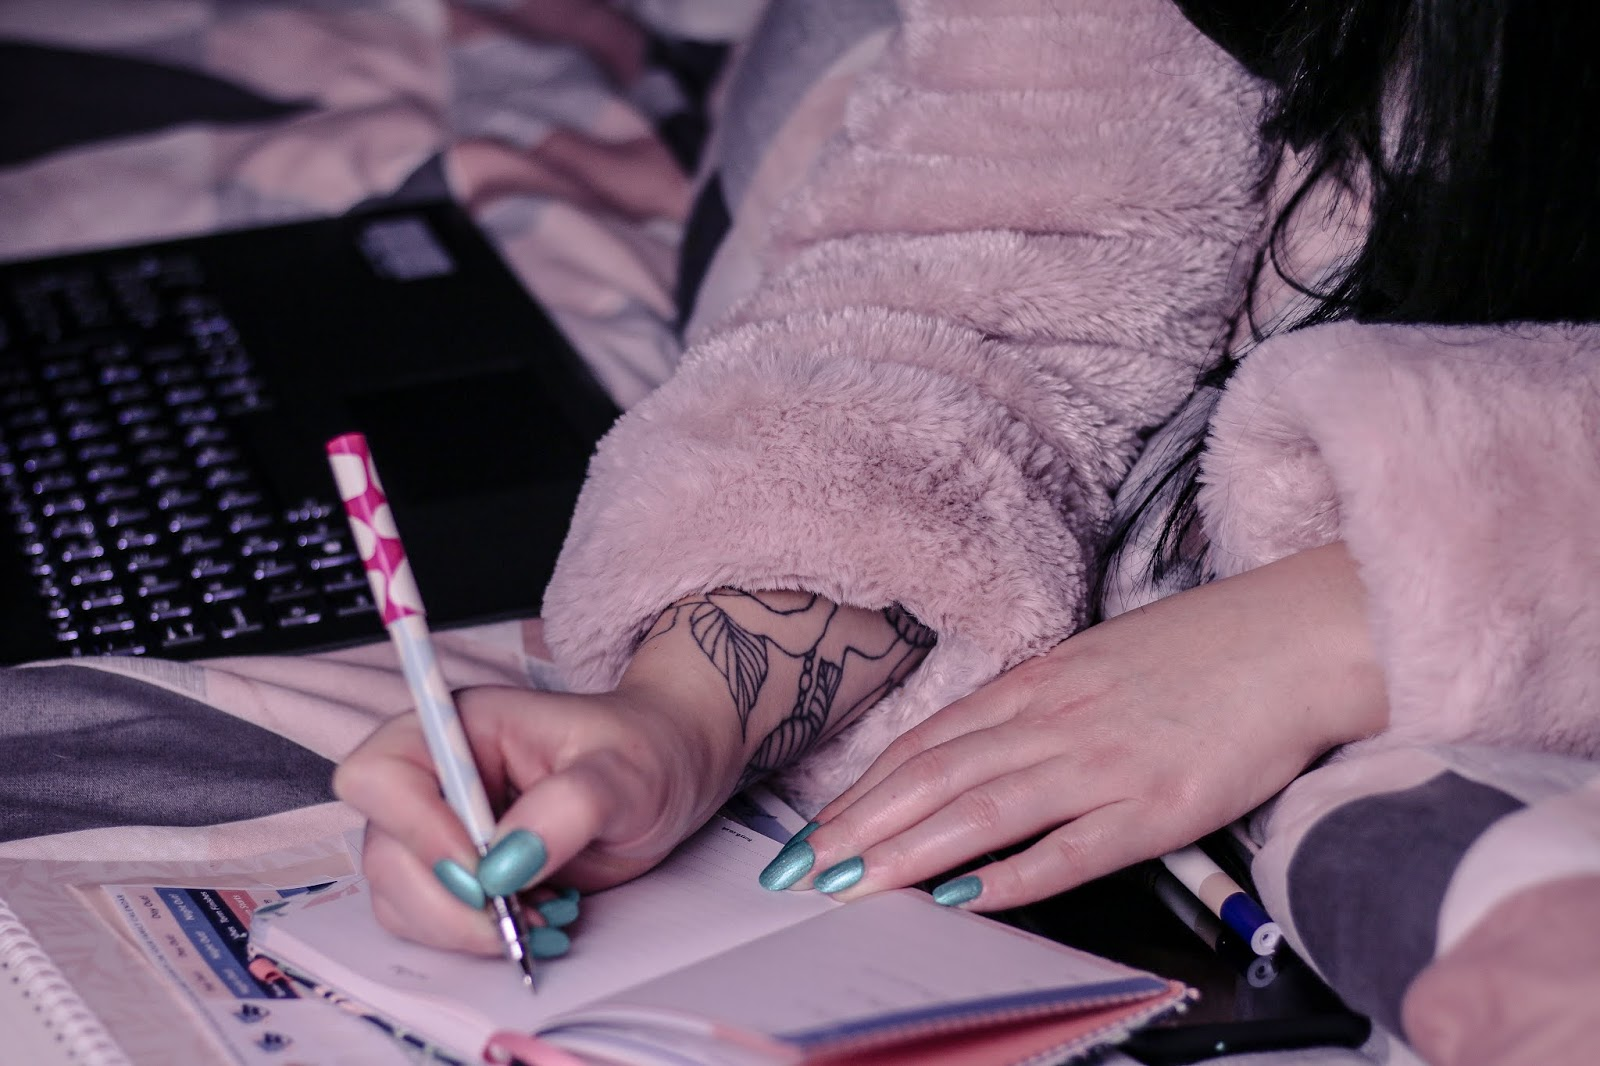 Close up photo of girl writing in diary, wearing a pink robe sitting on a bed with pink geometric bedding. There is a black laptop in the background out of focus